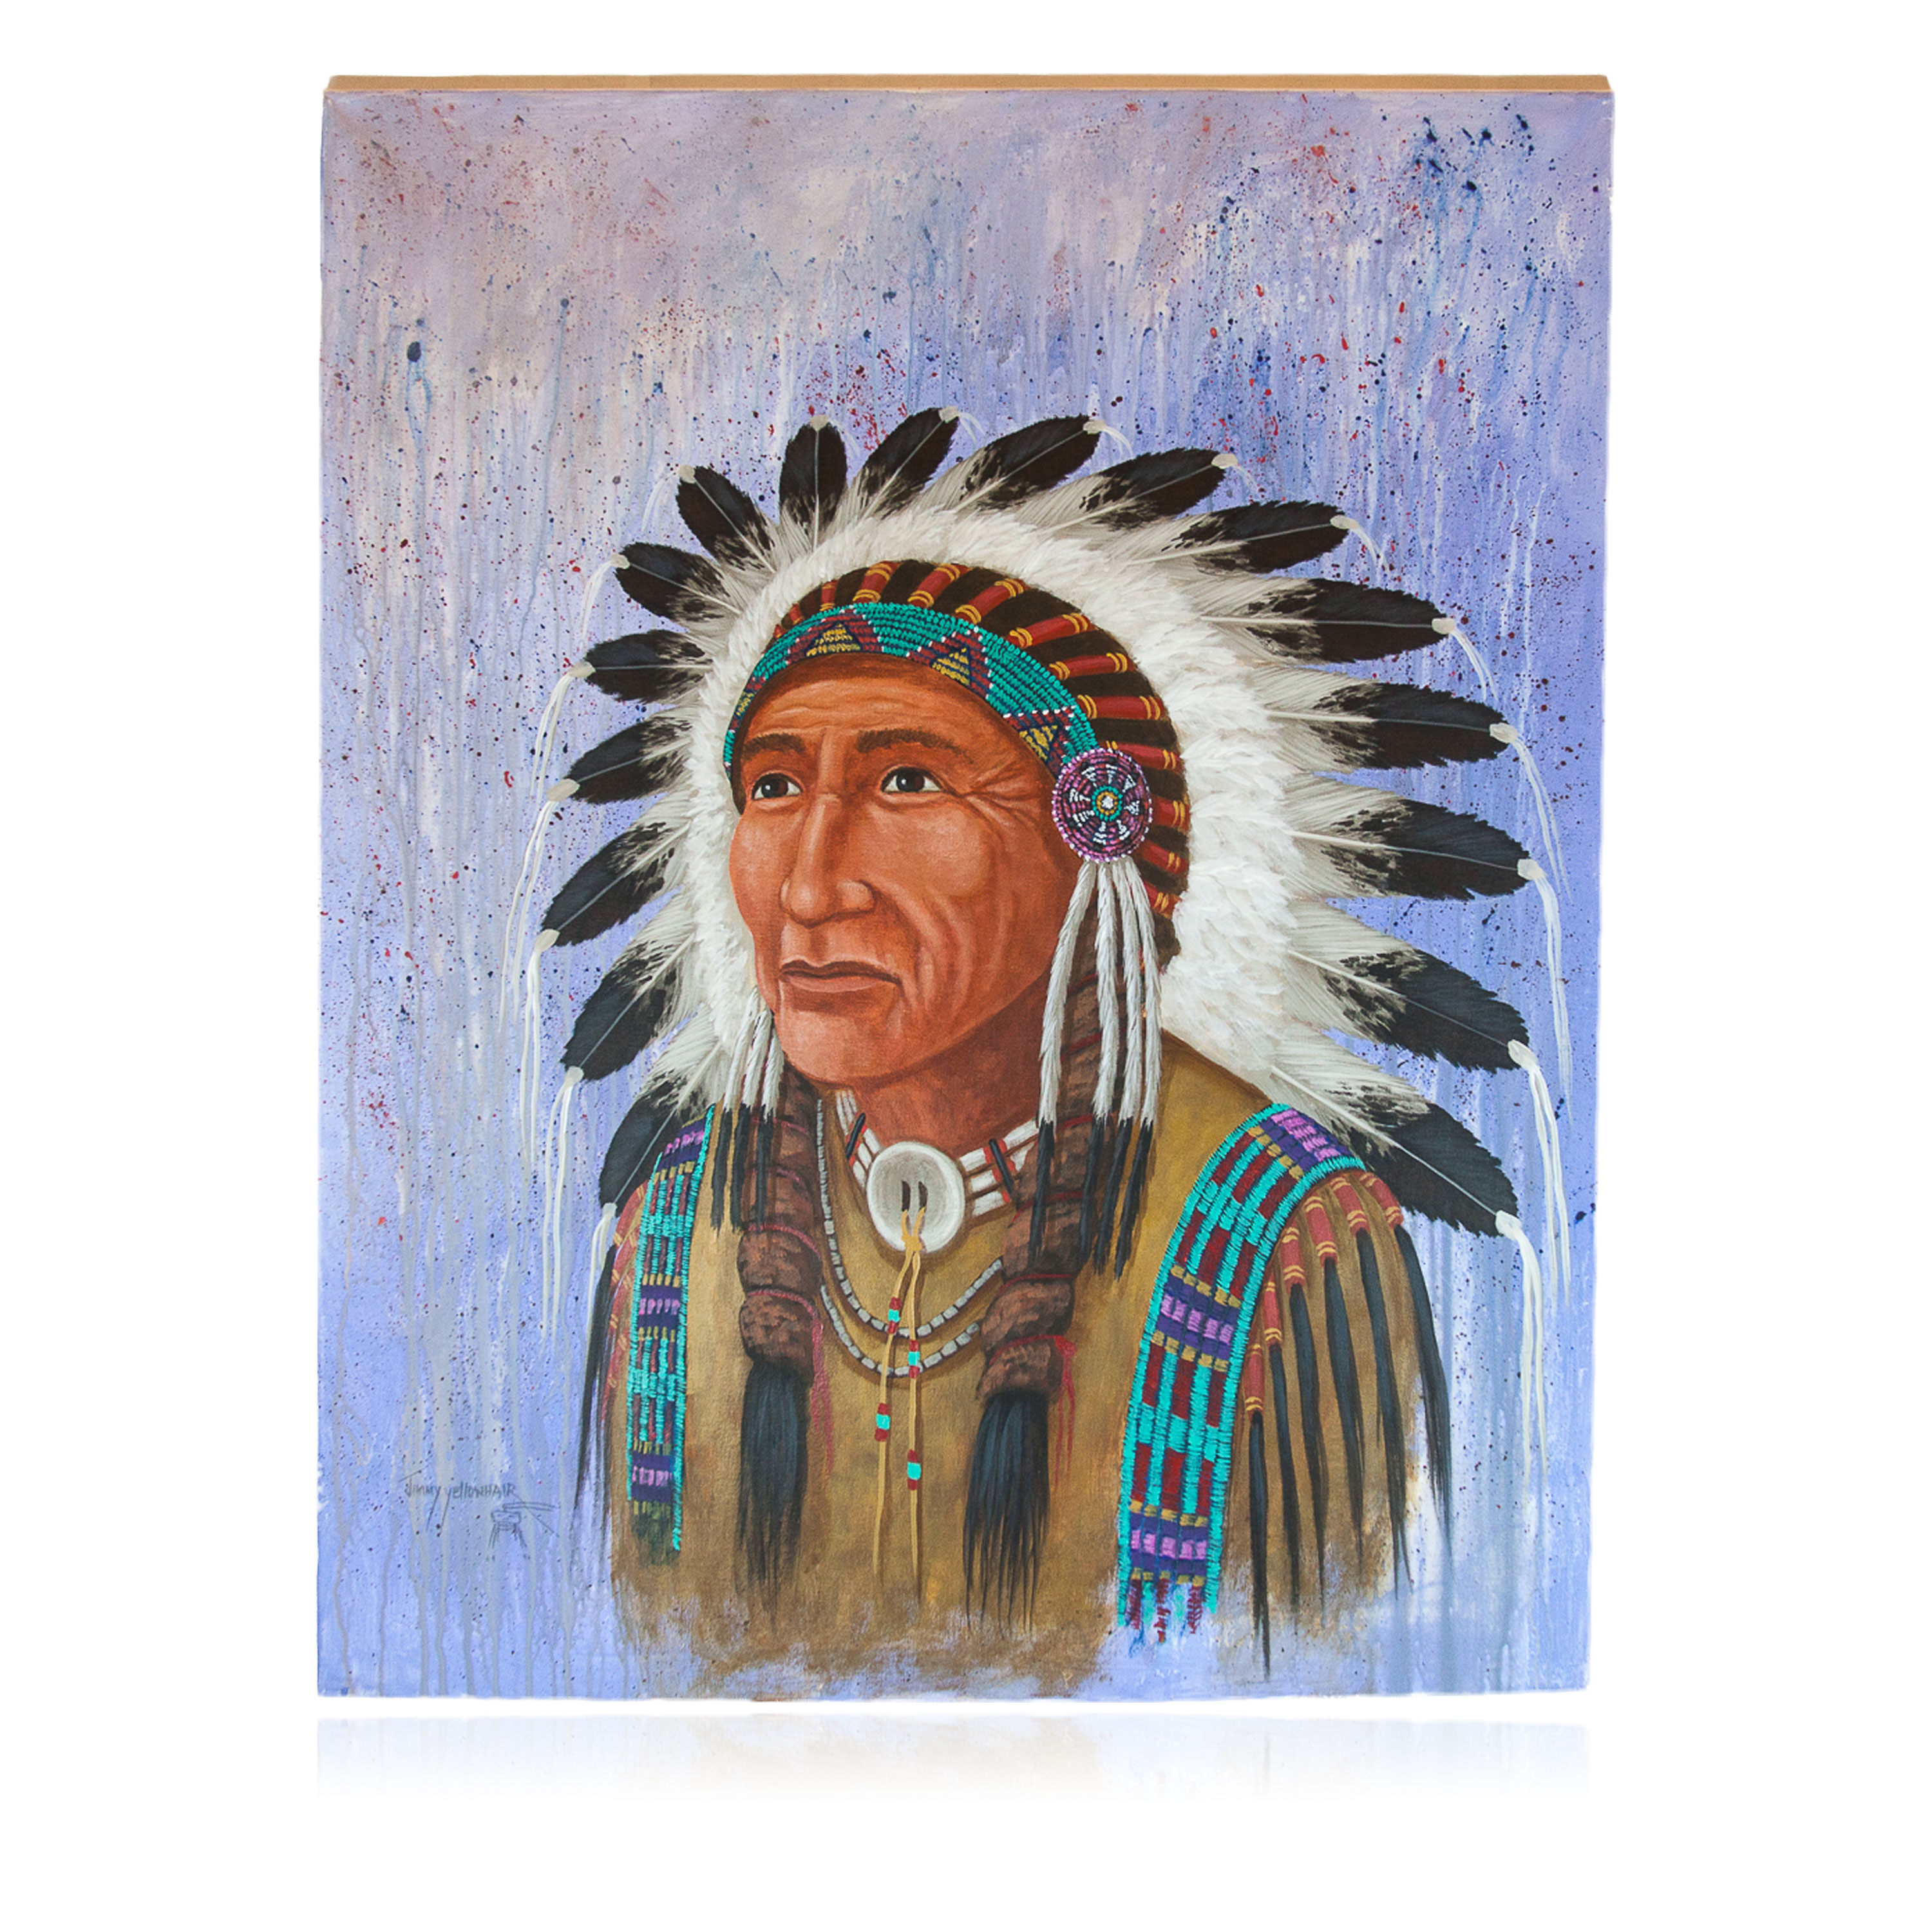 $600 Navajo Indian Chief Painted by Certified Authentic Acrylic Native American Painting  10799 Painting NB160310233920 10799 (by LomaSiiva)